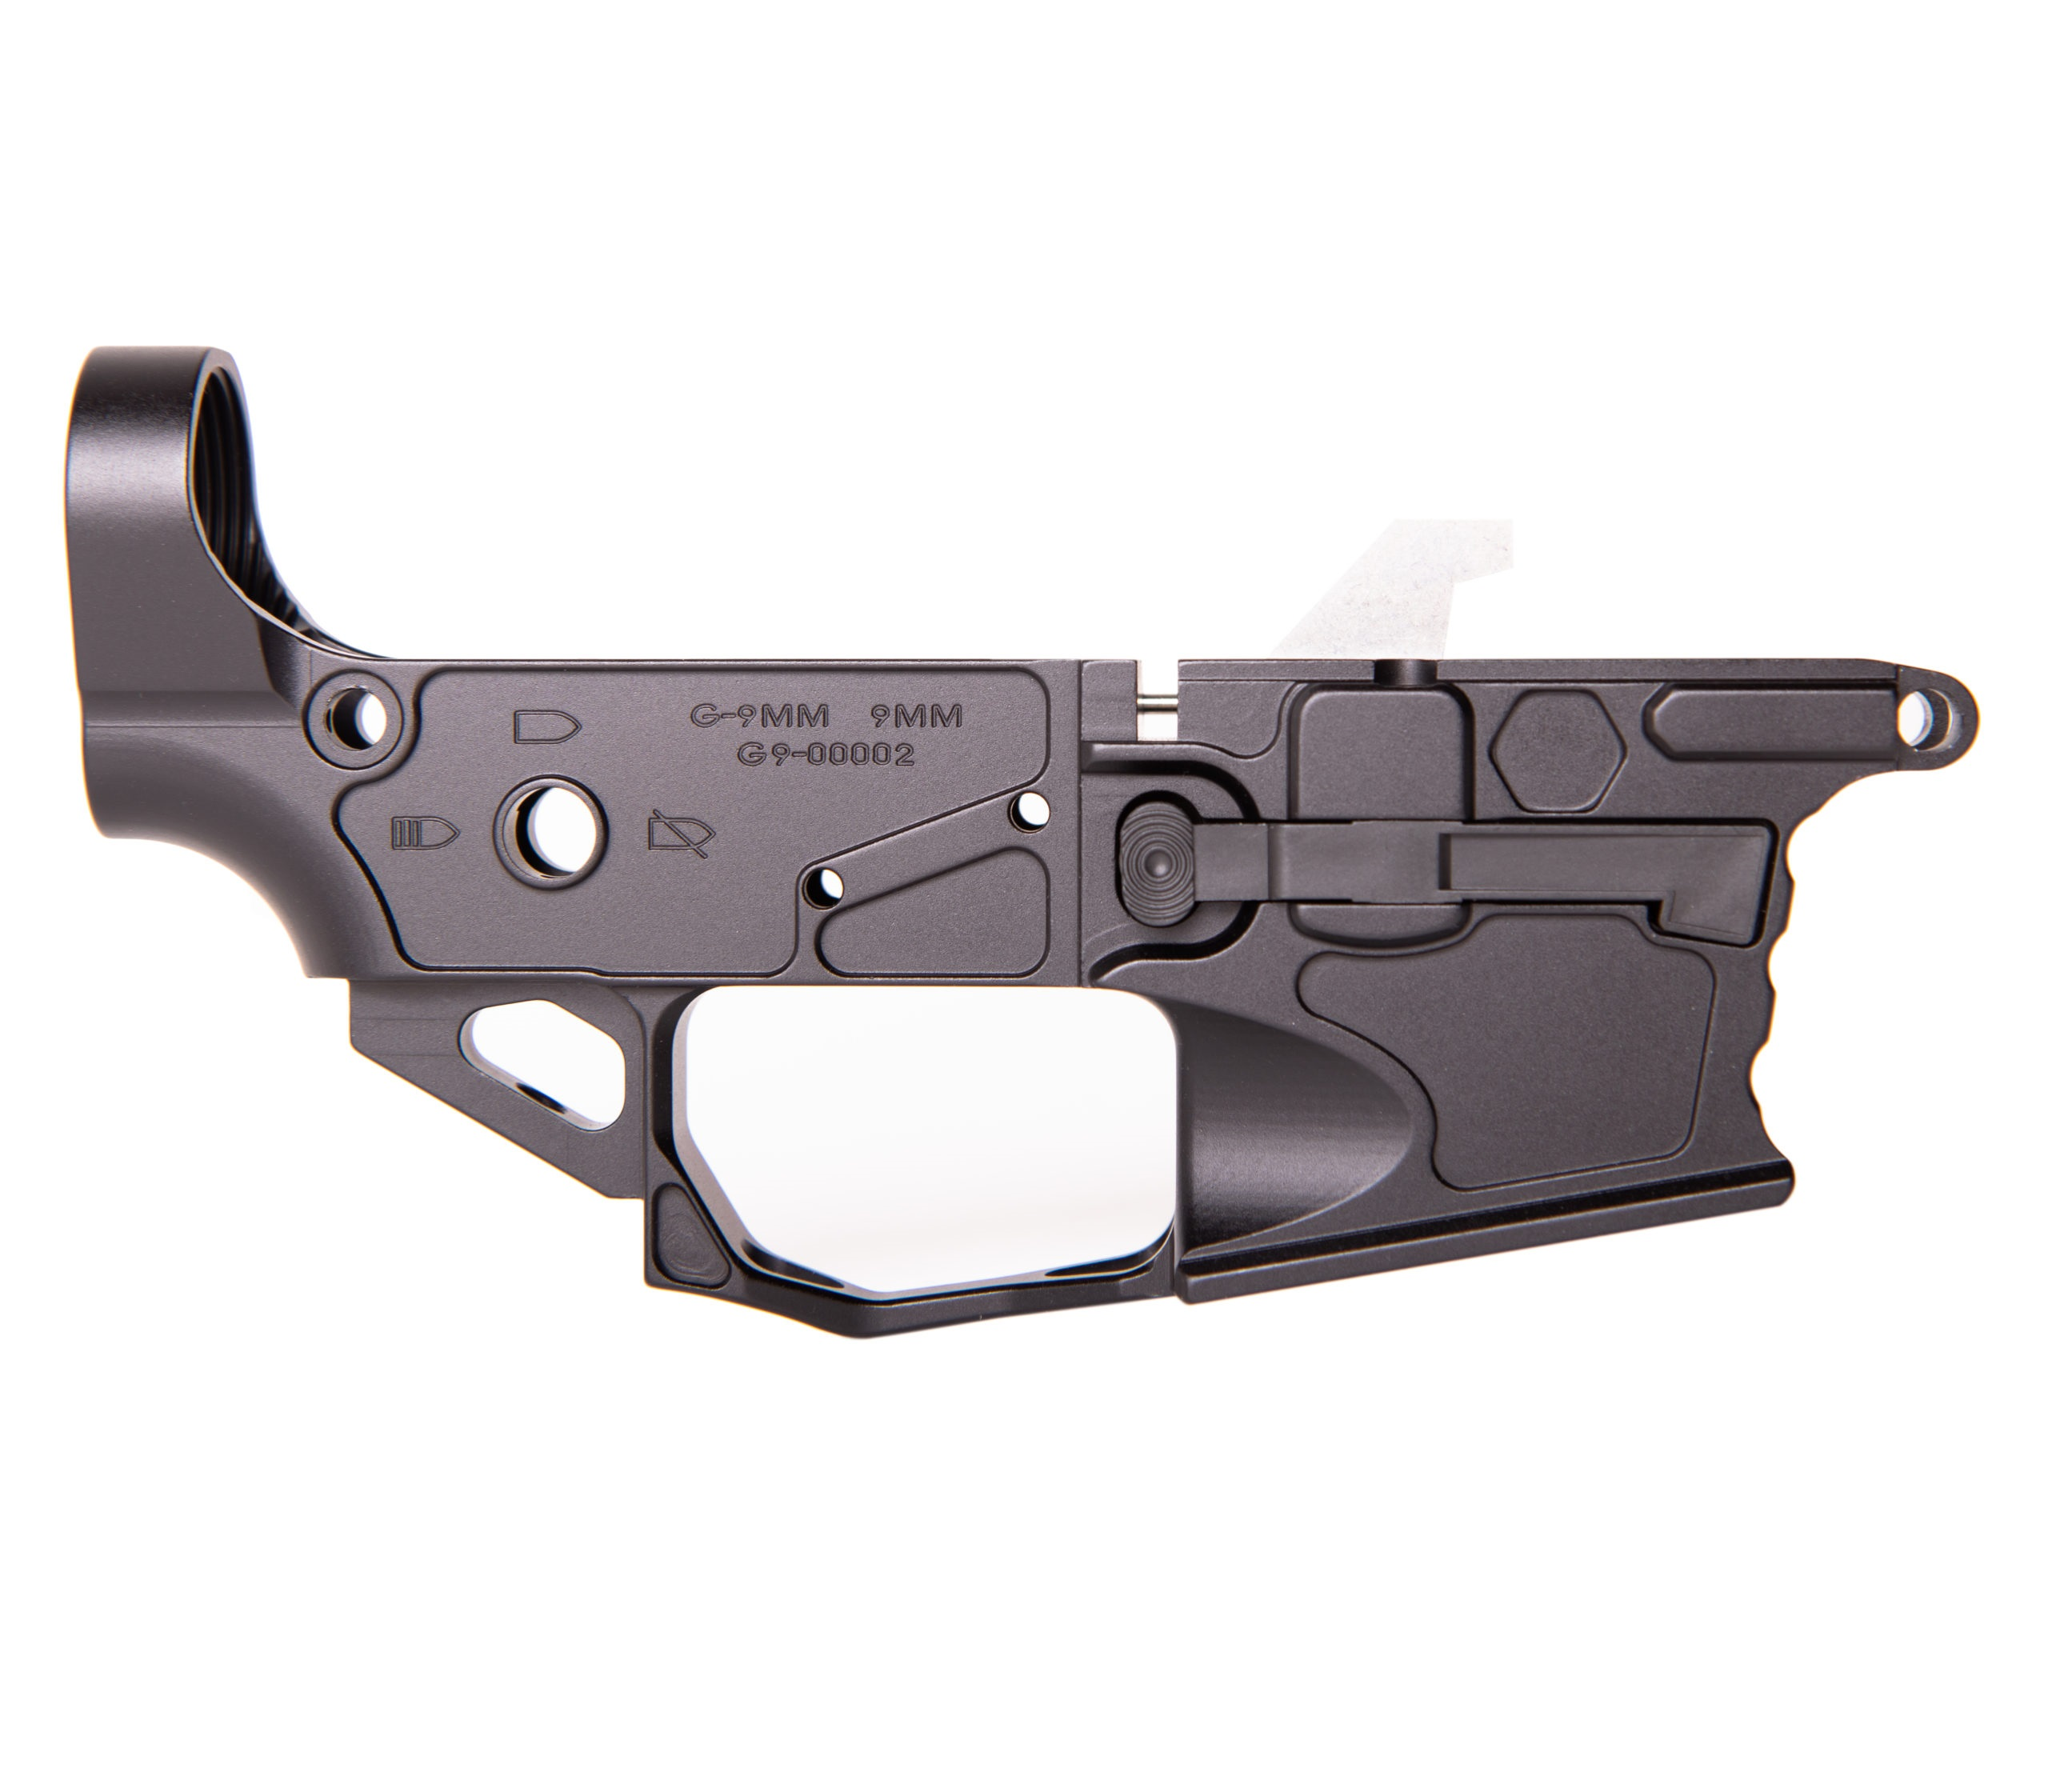 NEW FRONTIER ARMORY DEBUTS THEIR AR-9 G-9 BILLET LOWER RECEIVER GEN 2